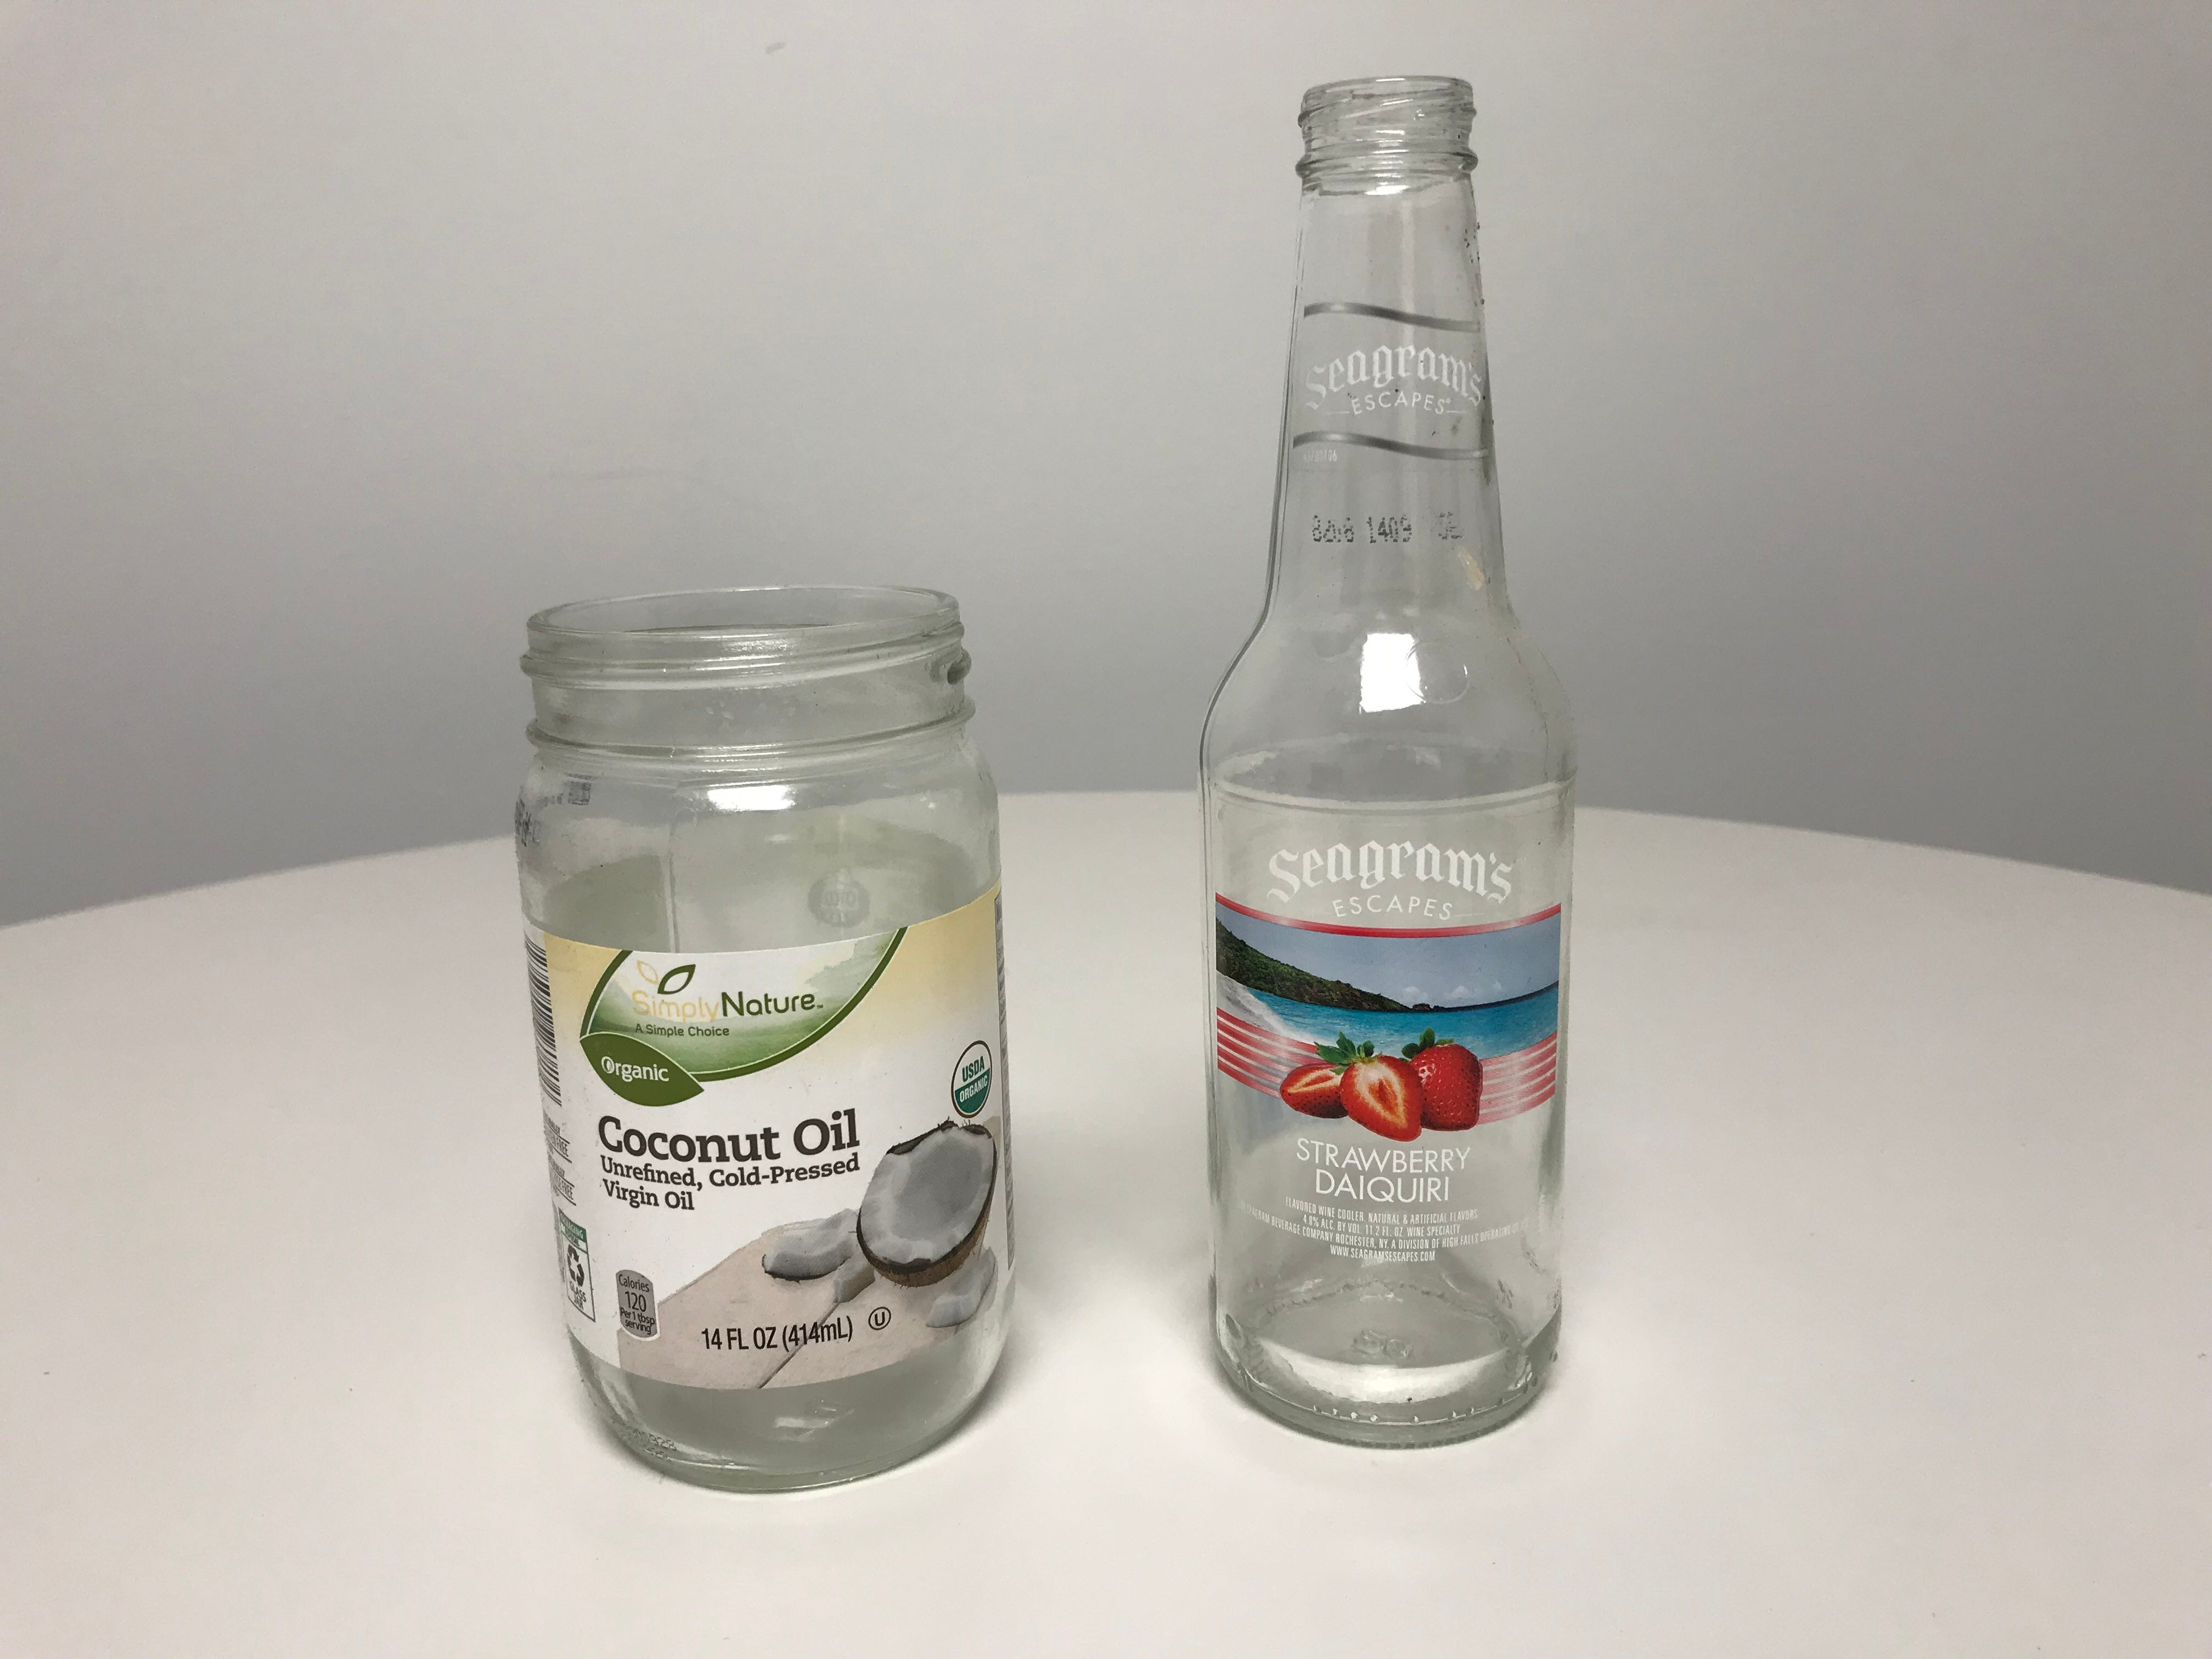 Examples of glass food and beverage containers that can go into curbside recycling bins.